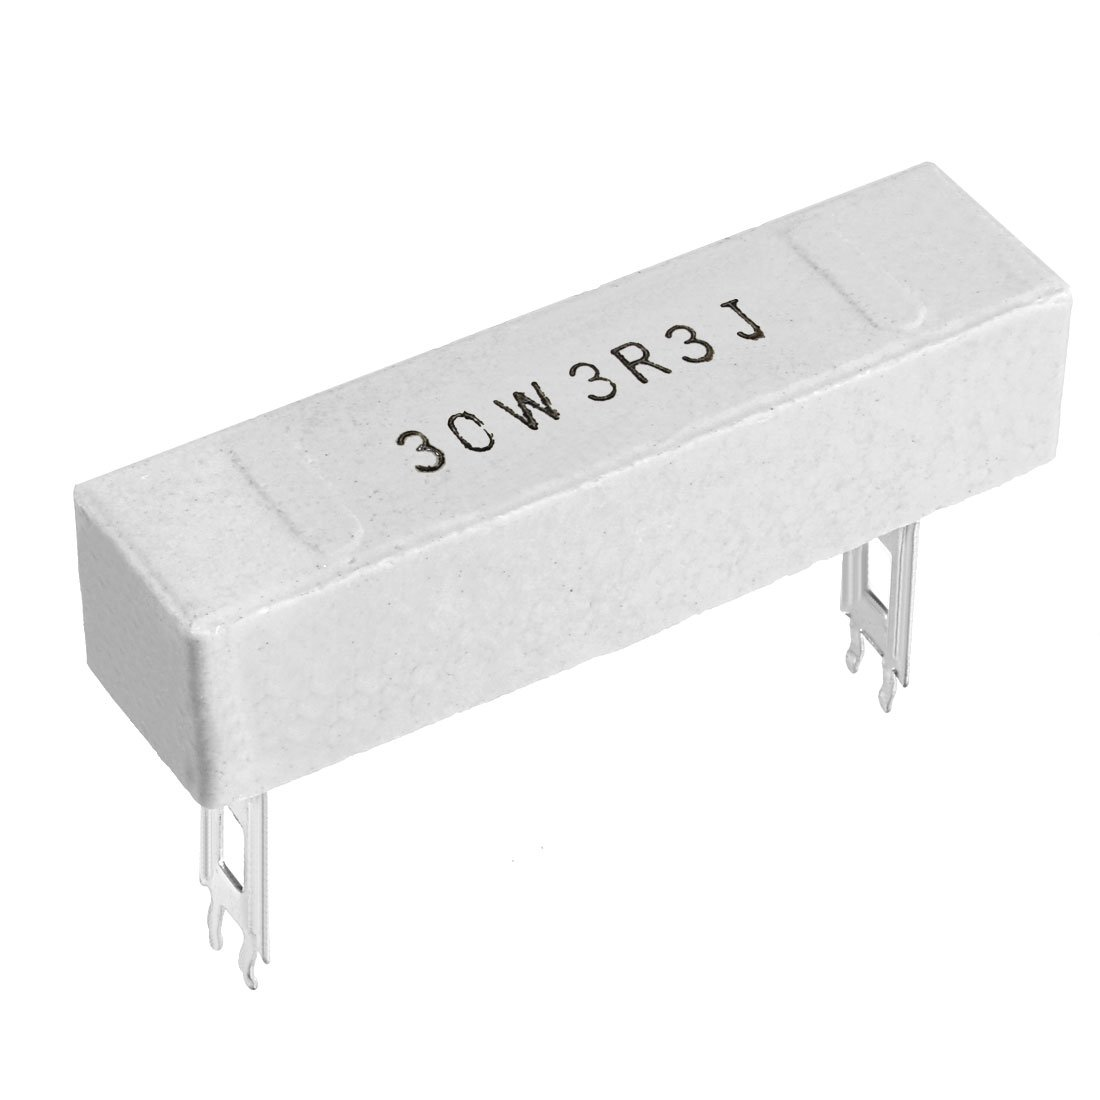 uxcell 100W 3 Ohm Power Resistor Ceramic Cement Resistor Axial Lead White